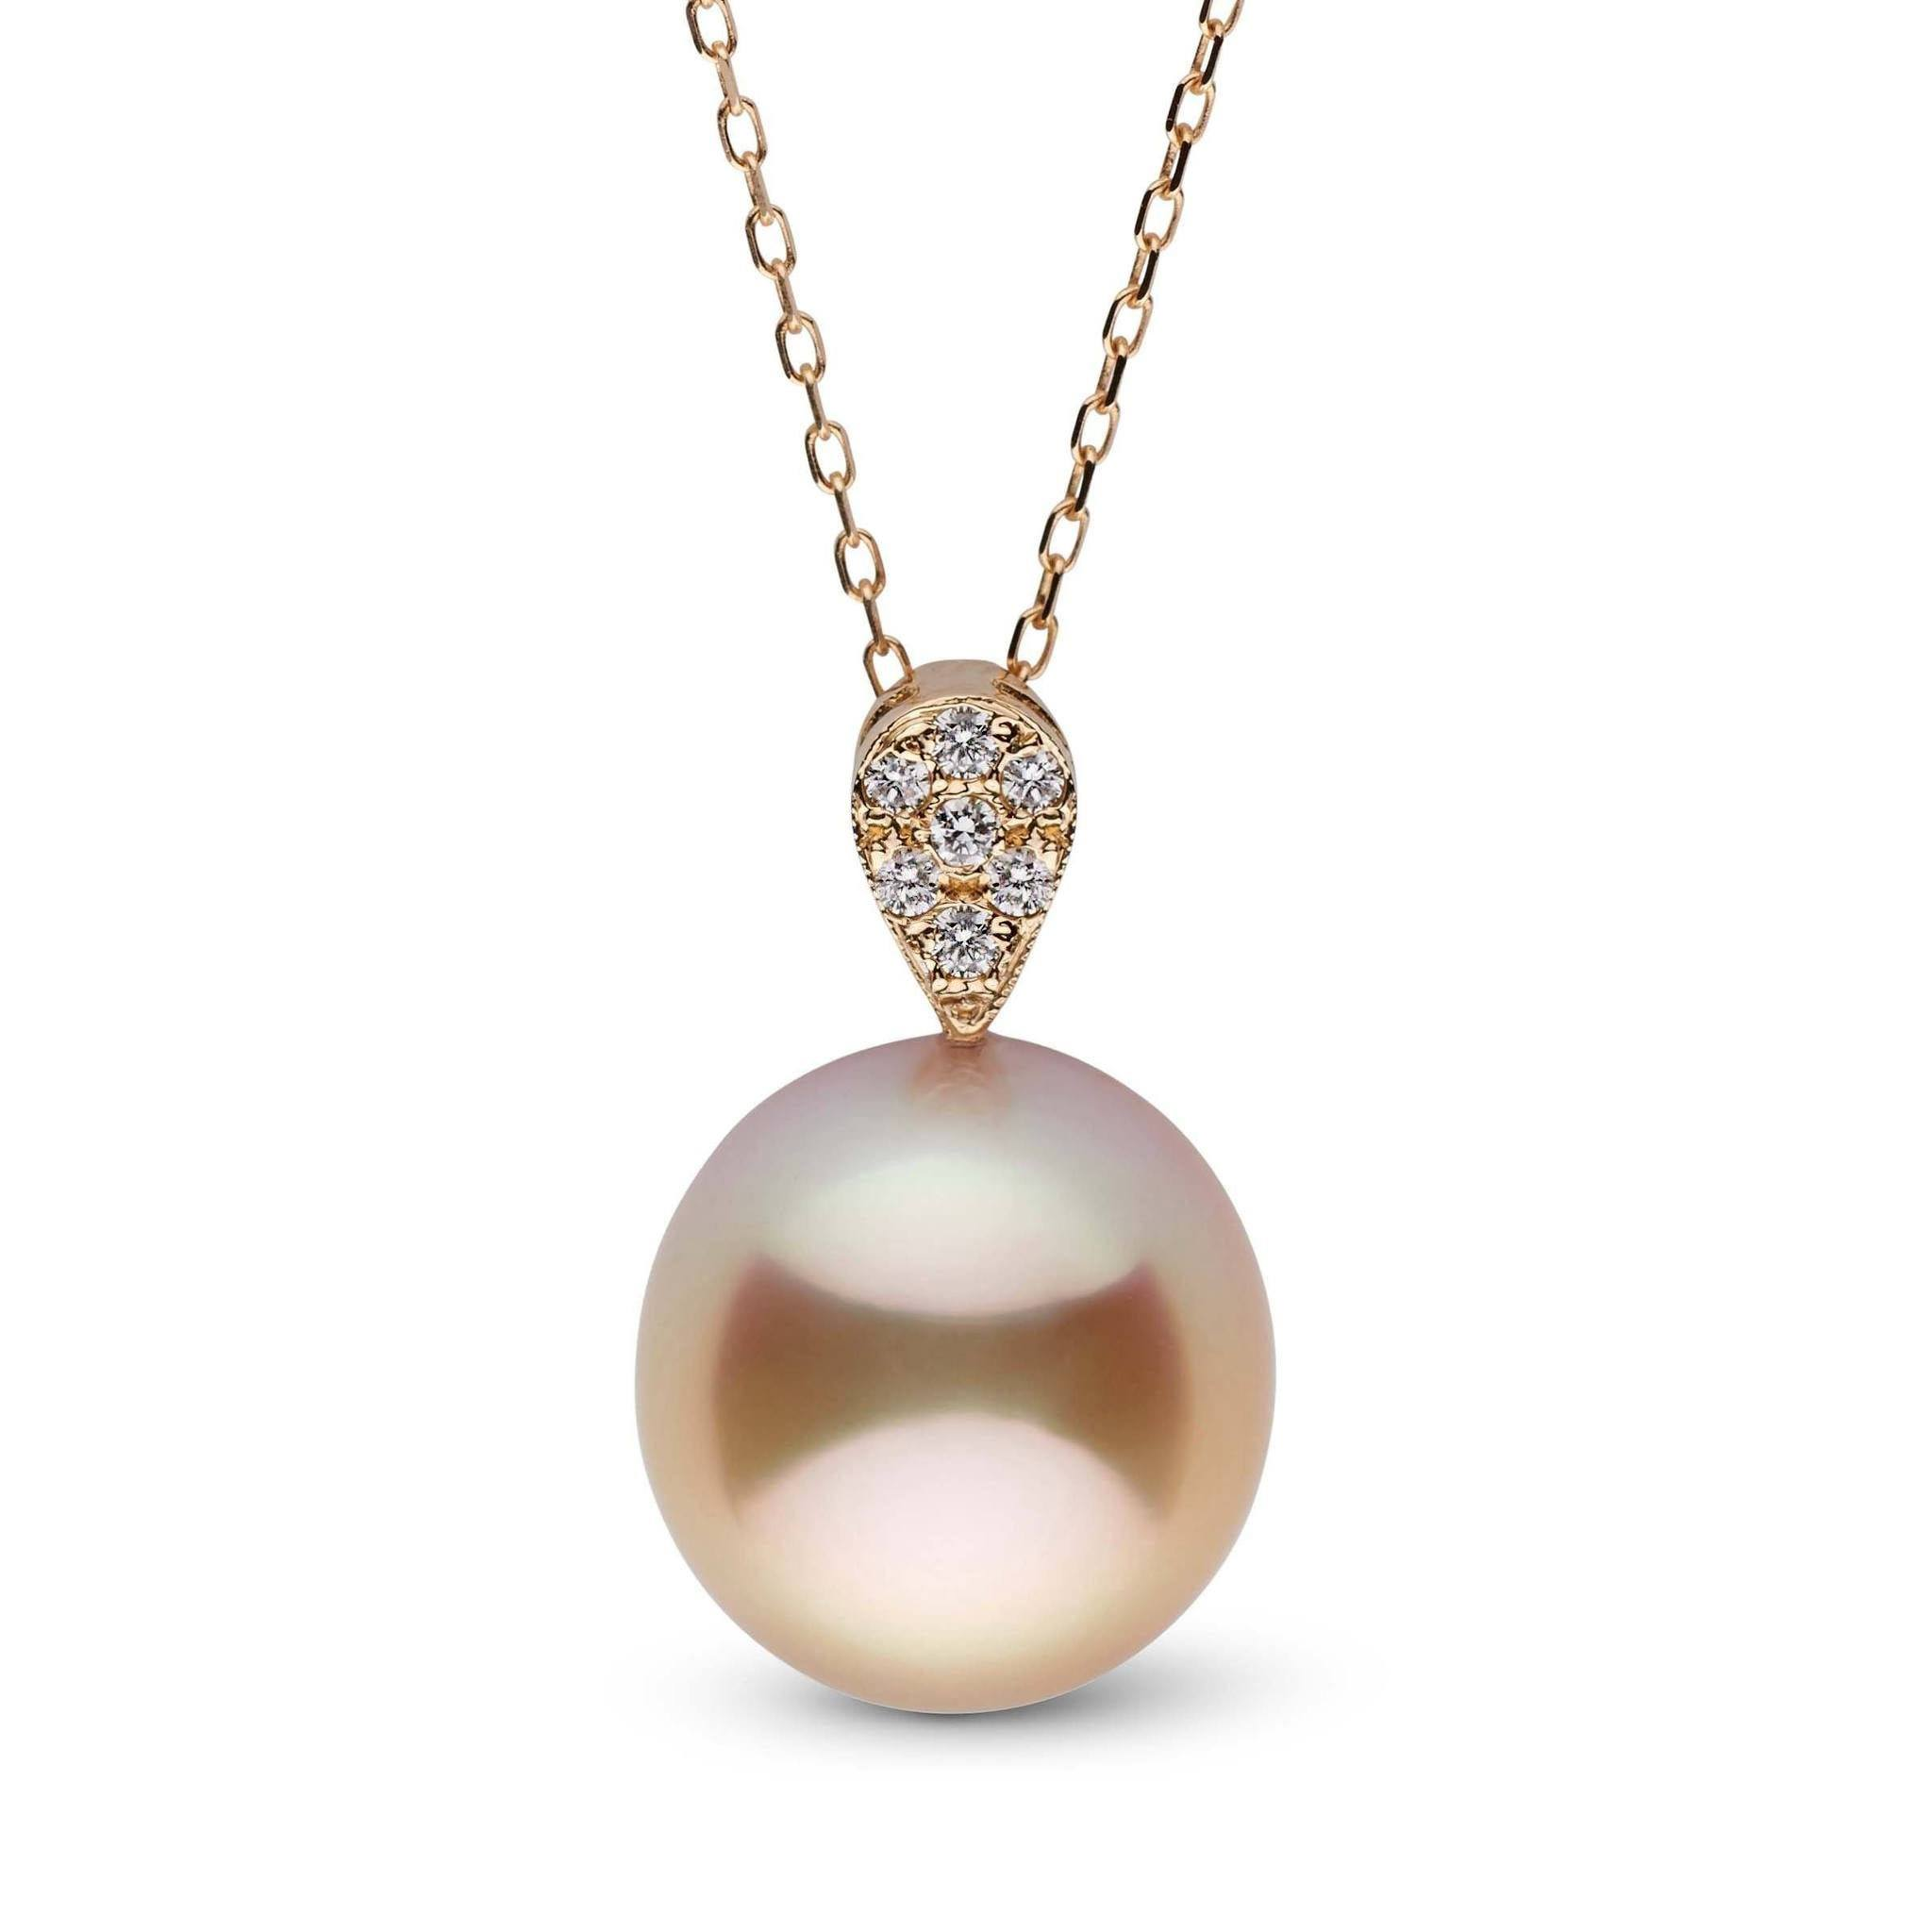 13.4 x 14.3 mm Golden South Sea Drop Pearl and Diamond Posh Pendant